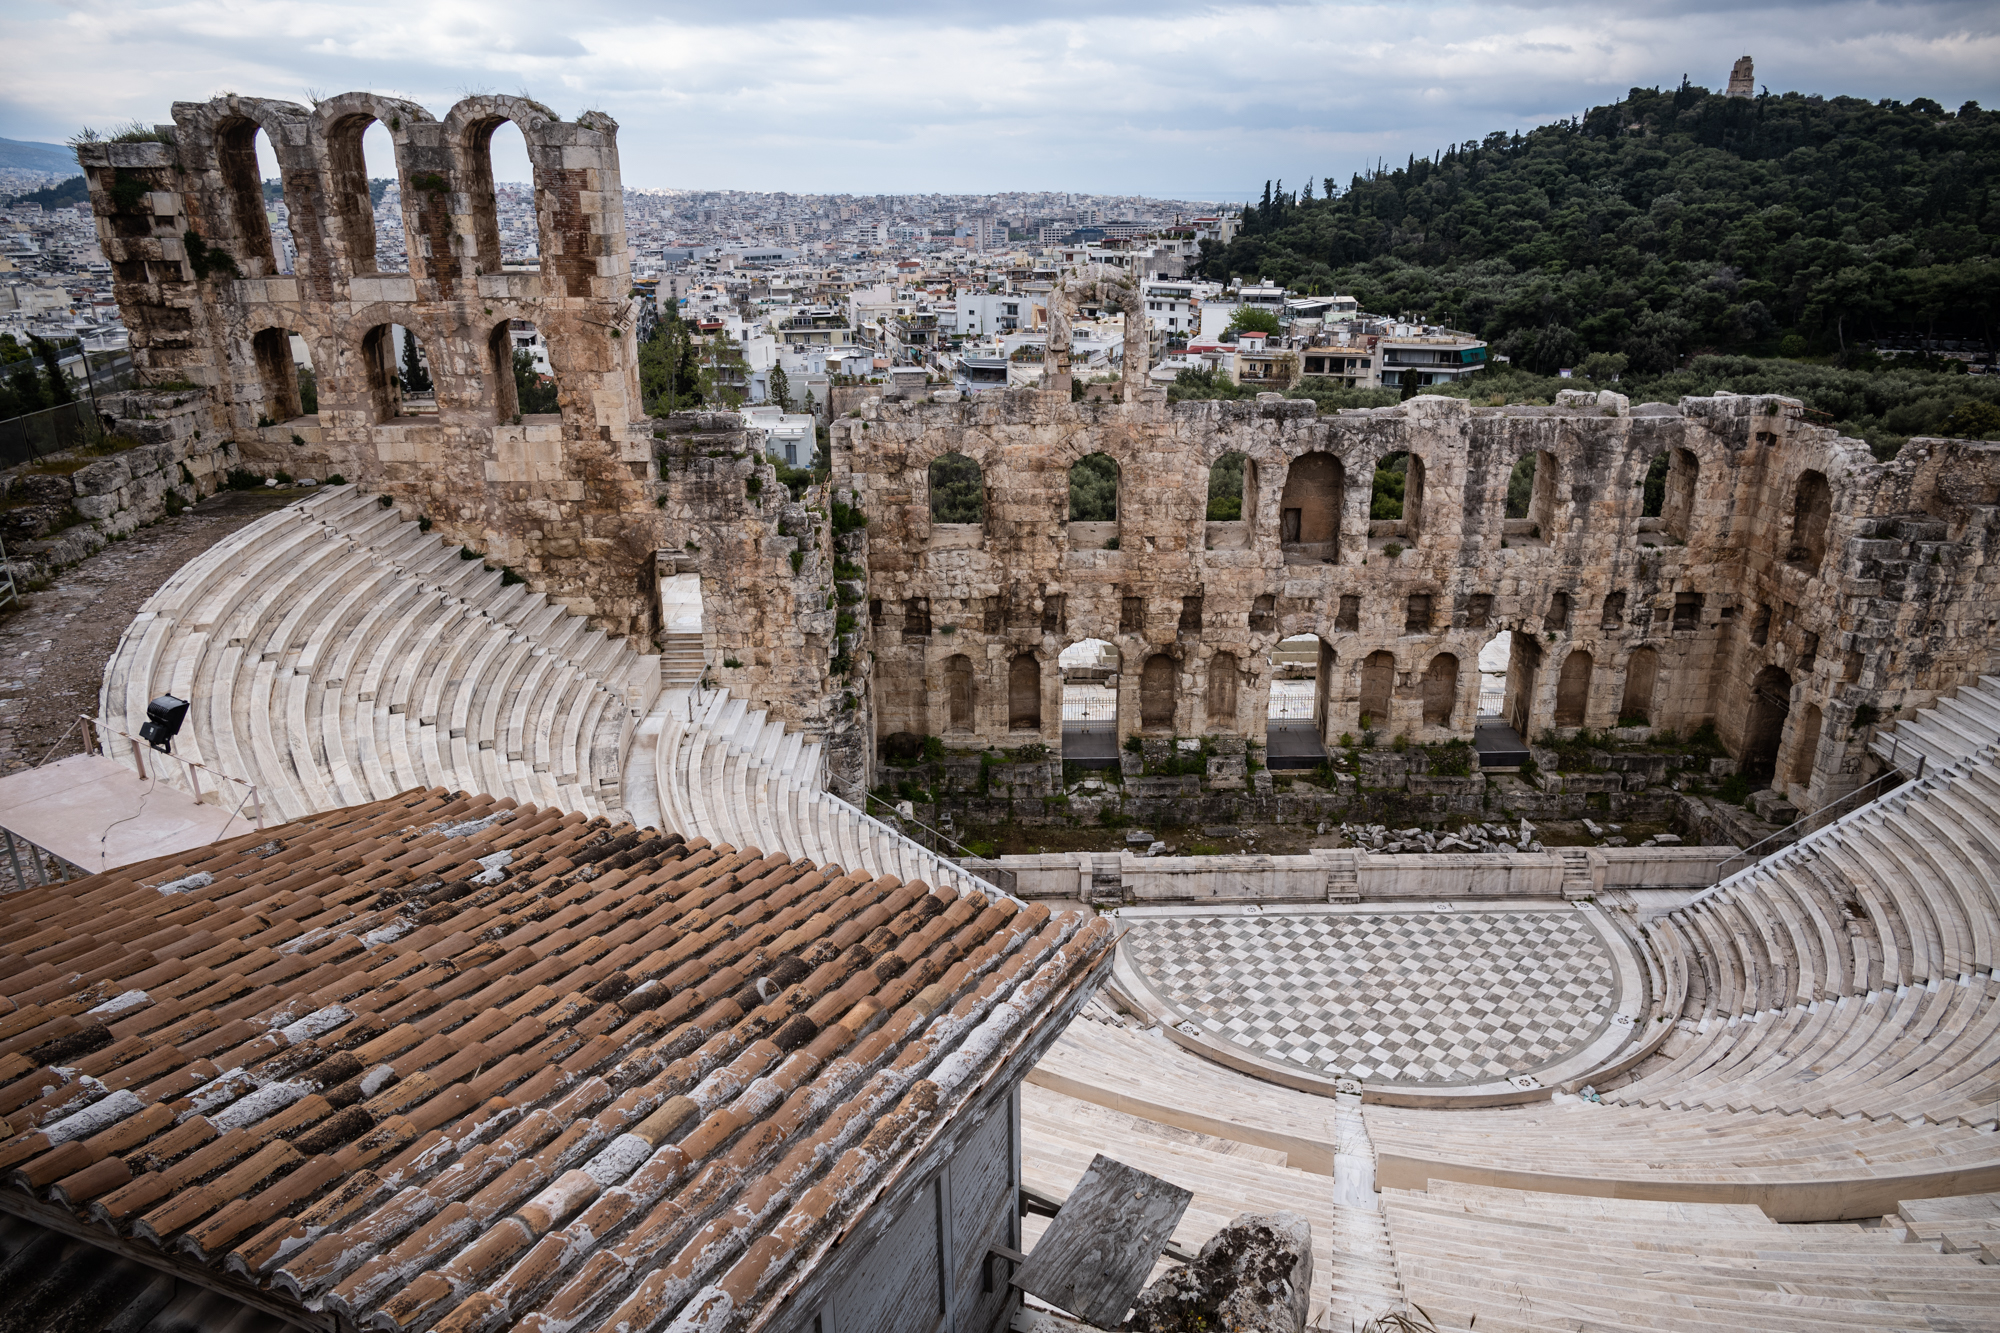 The Ancient Theater on the Acropolis is still in use today